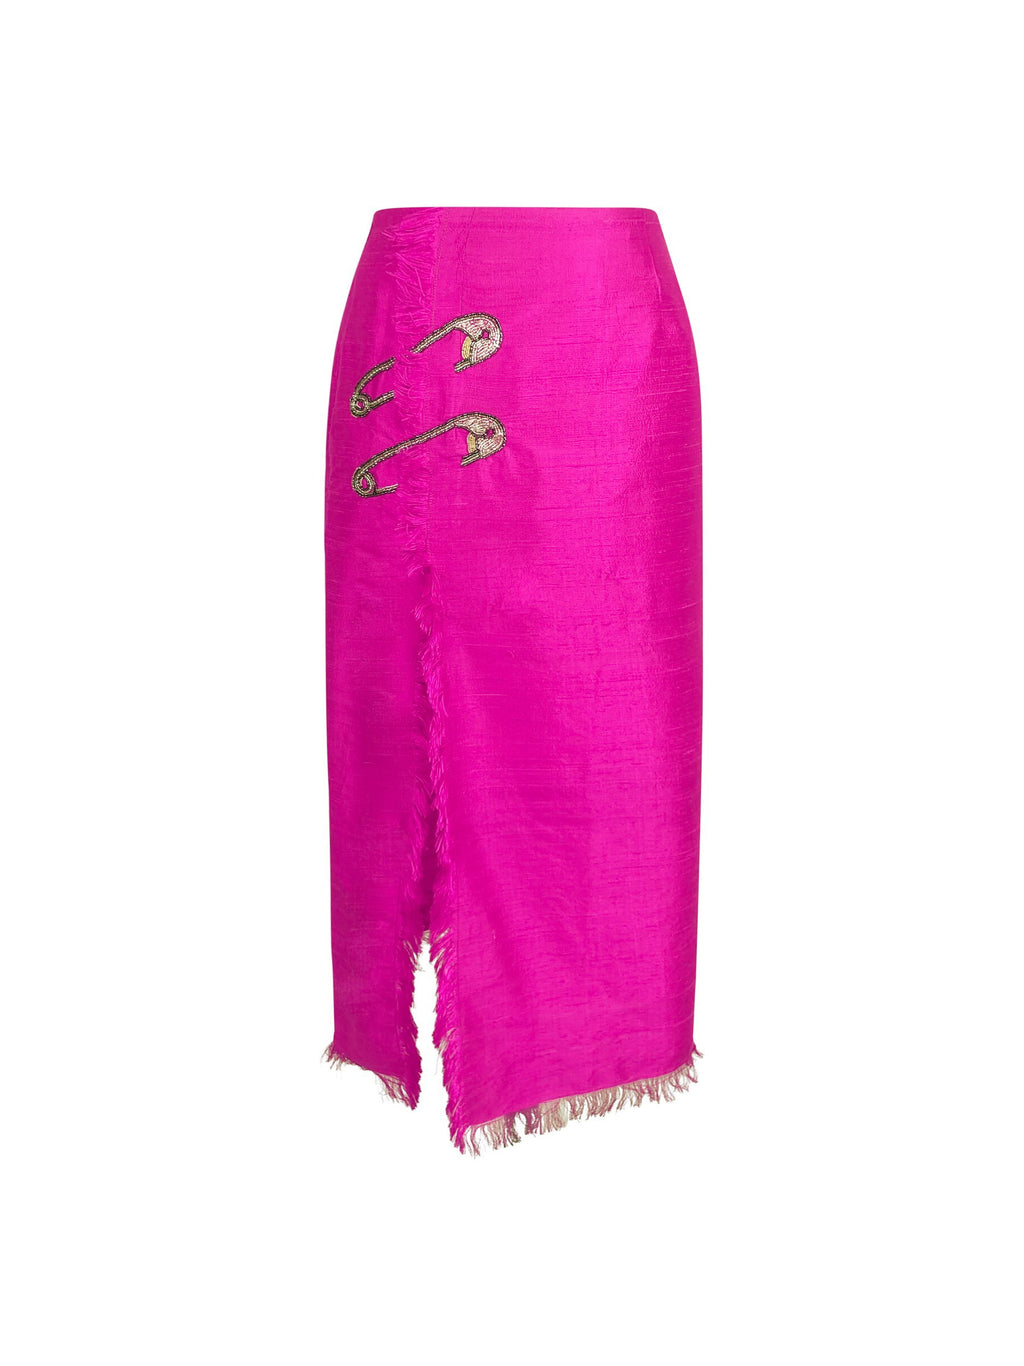 Lu-Li Embroidered Skirt - Annie's Ibiza